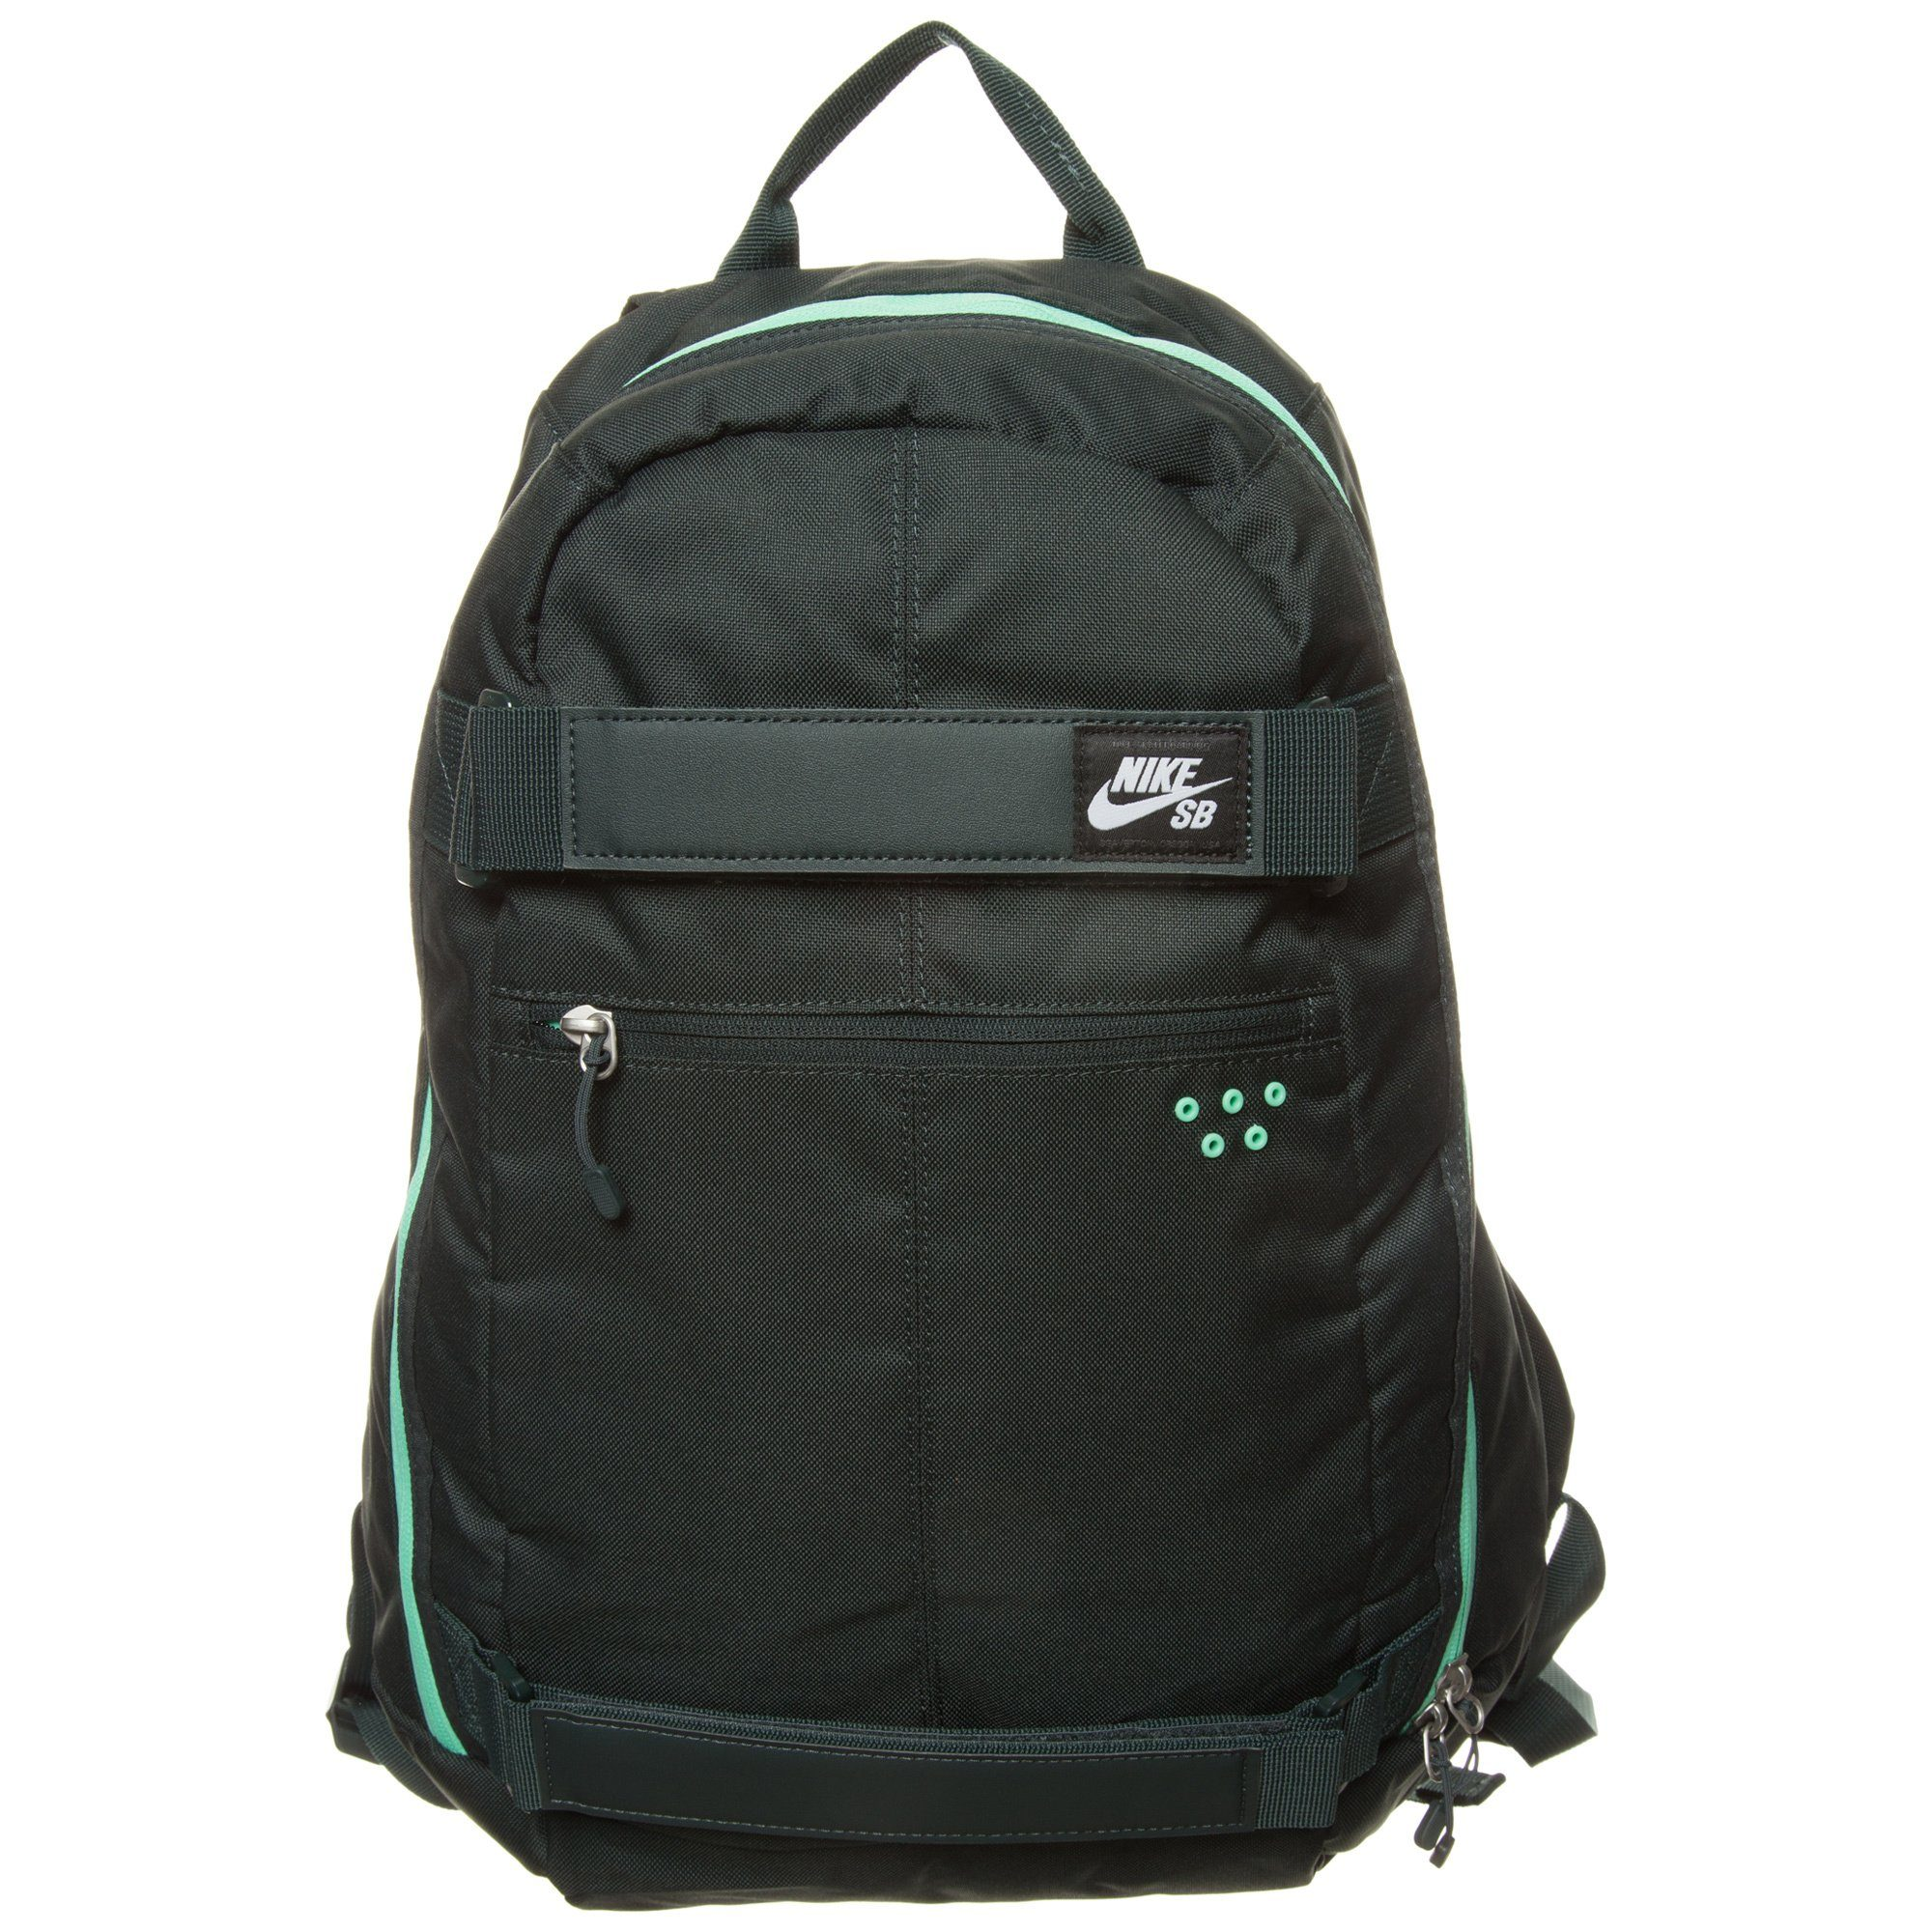 NIKE Embarca Medium Rucksack